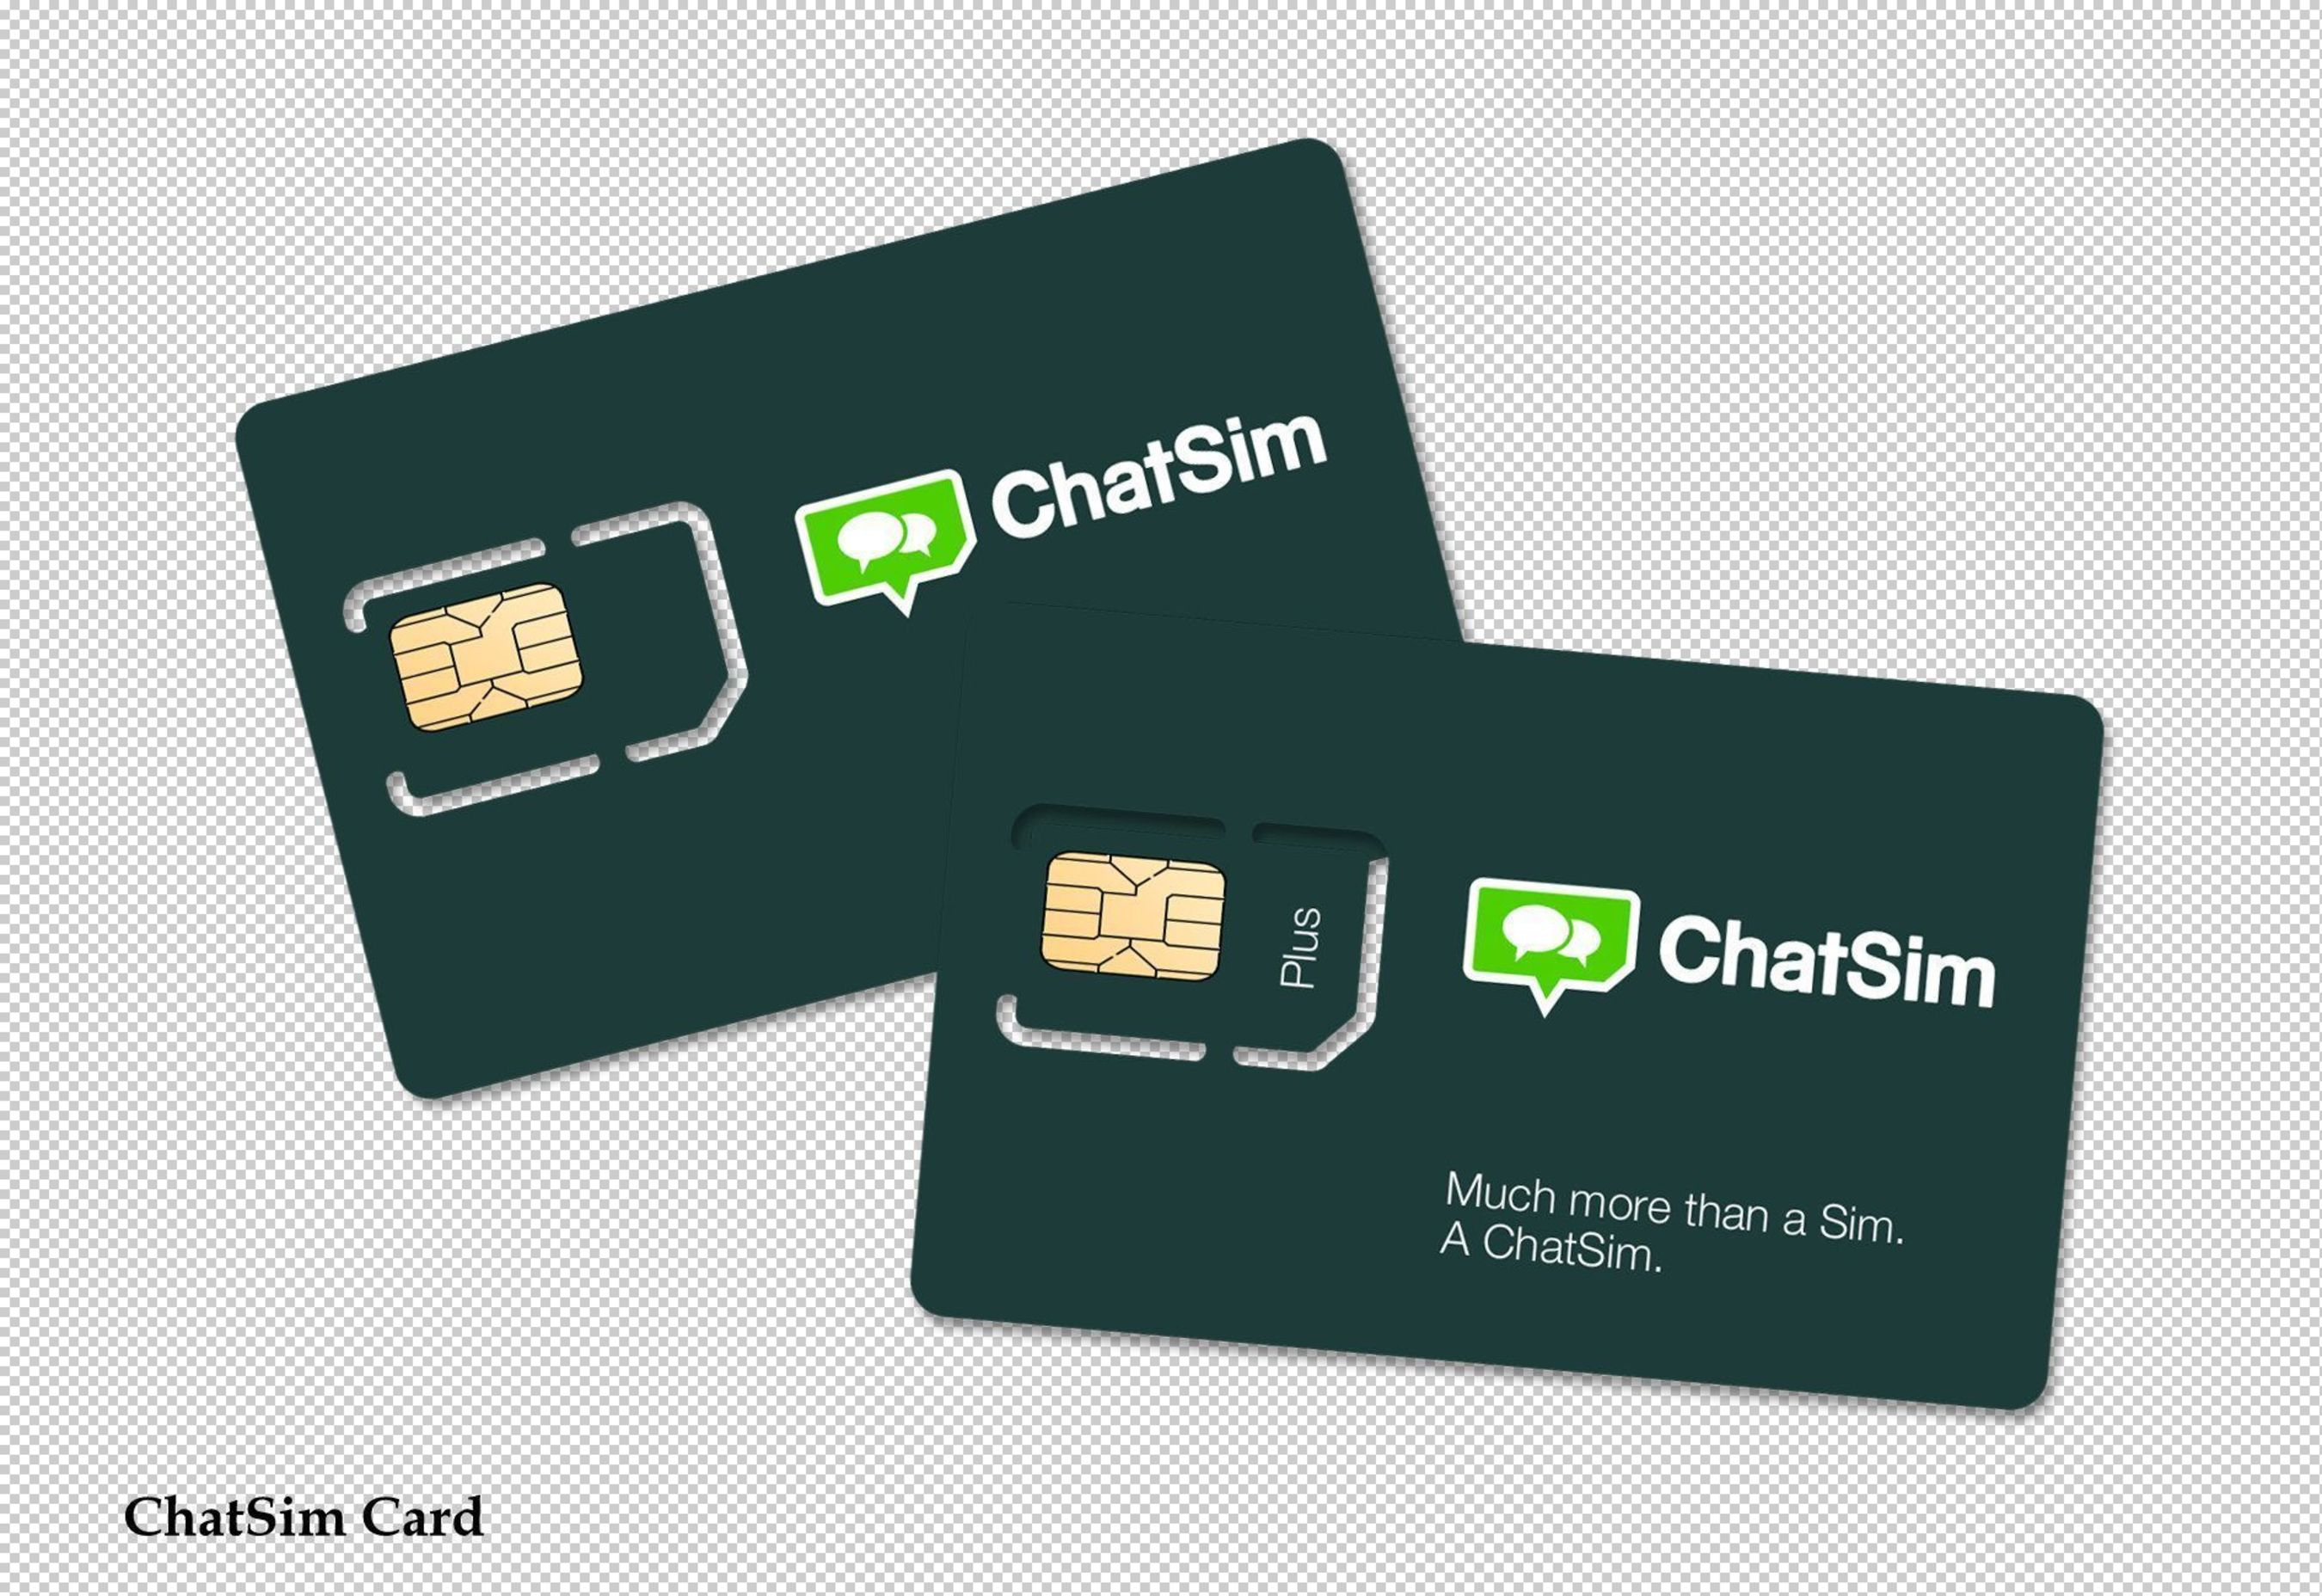 ChatSim's Rise: Zeromobile's Start-up Becomes an Independent Company; Angelsim Acquires a Share